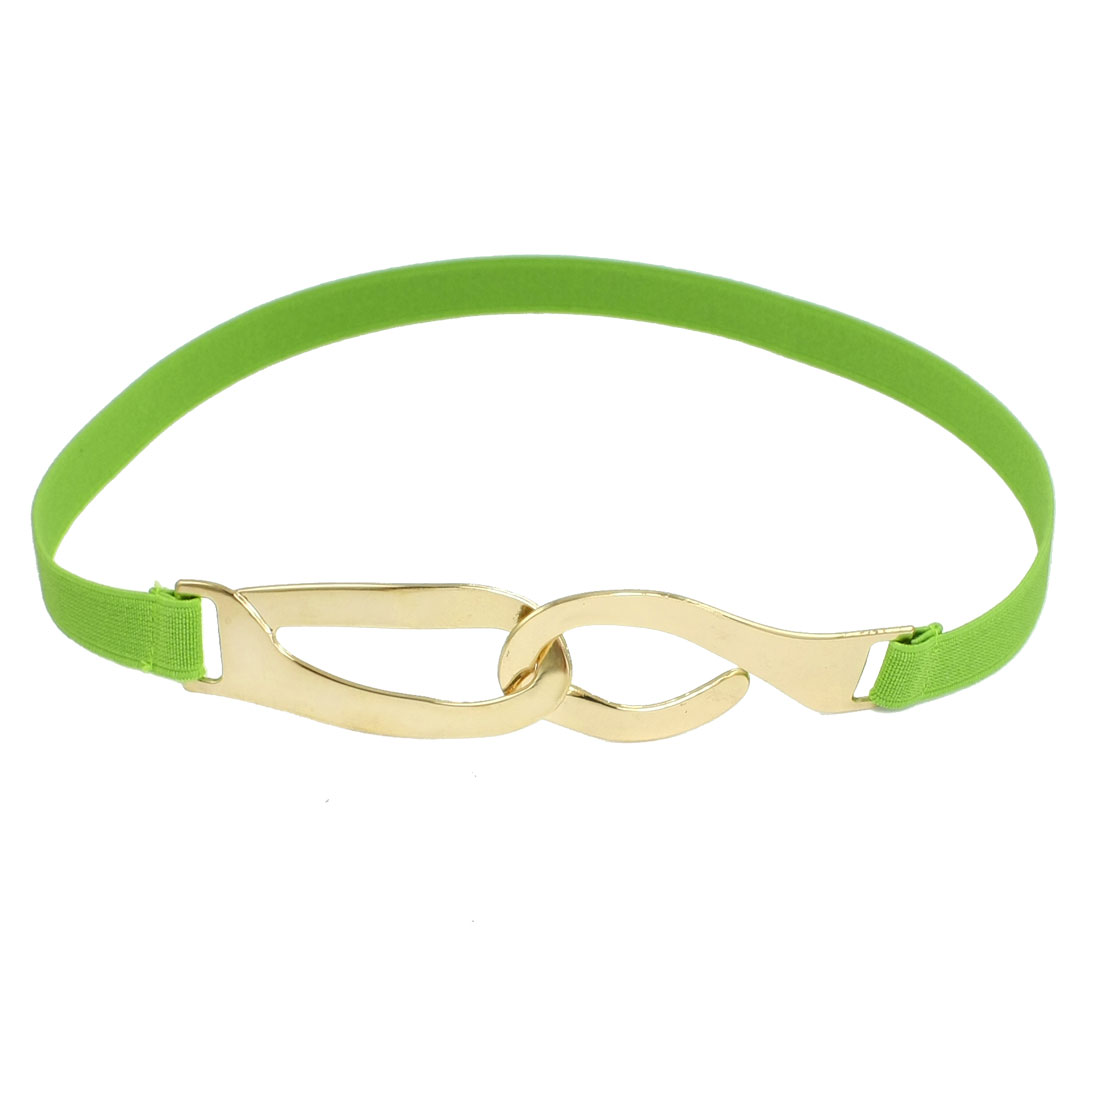 Women Metallic Interlocking Closure Textured Elastic Band Slim Waist Belt Green